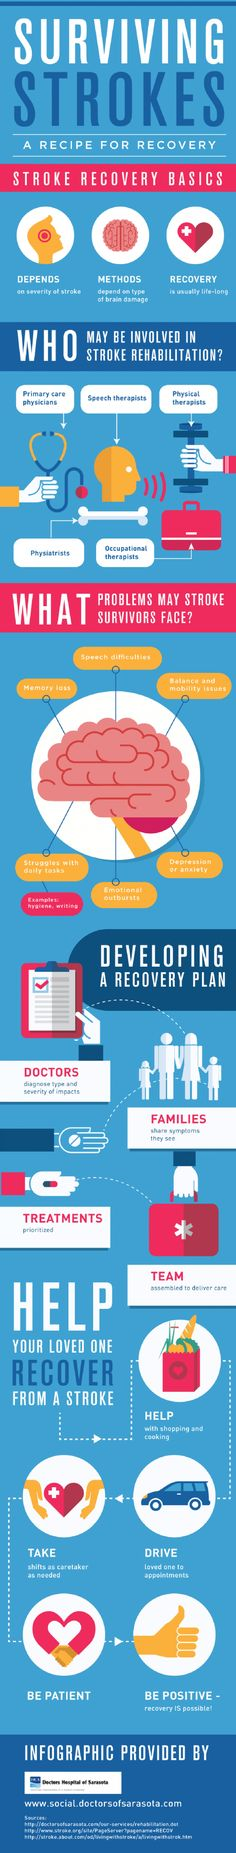 Surviving Strokes: A Recipe for Recovery --shared by BrittSE on Jul 11, 2014